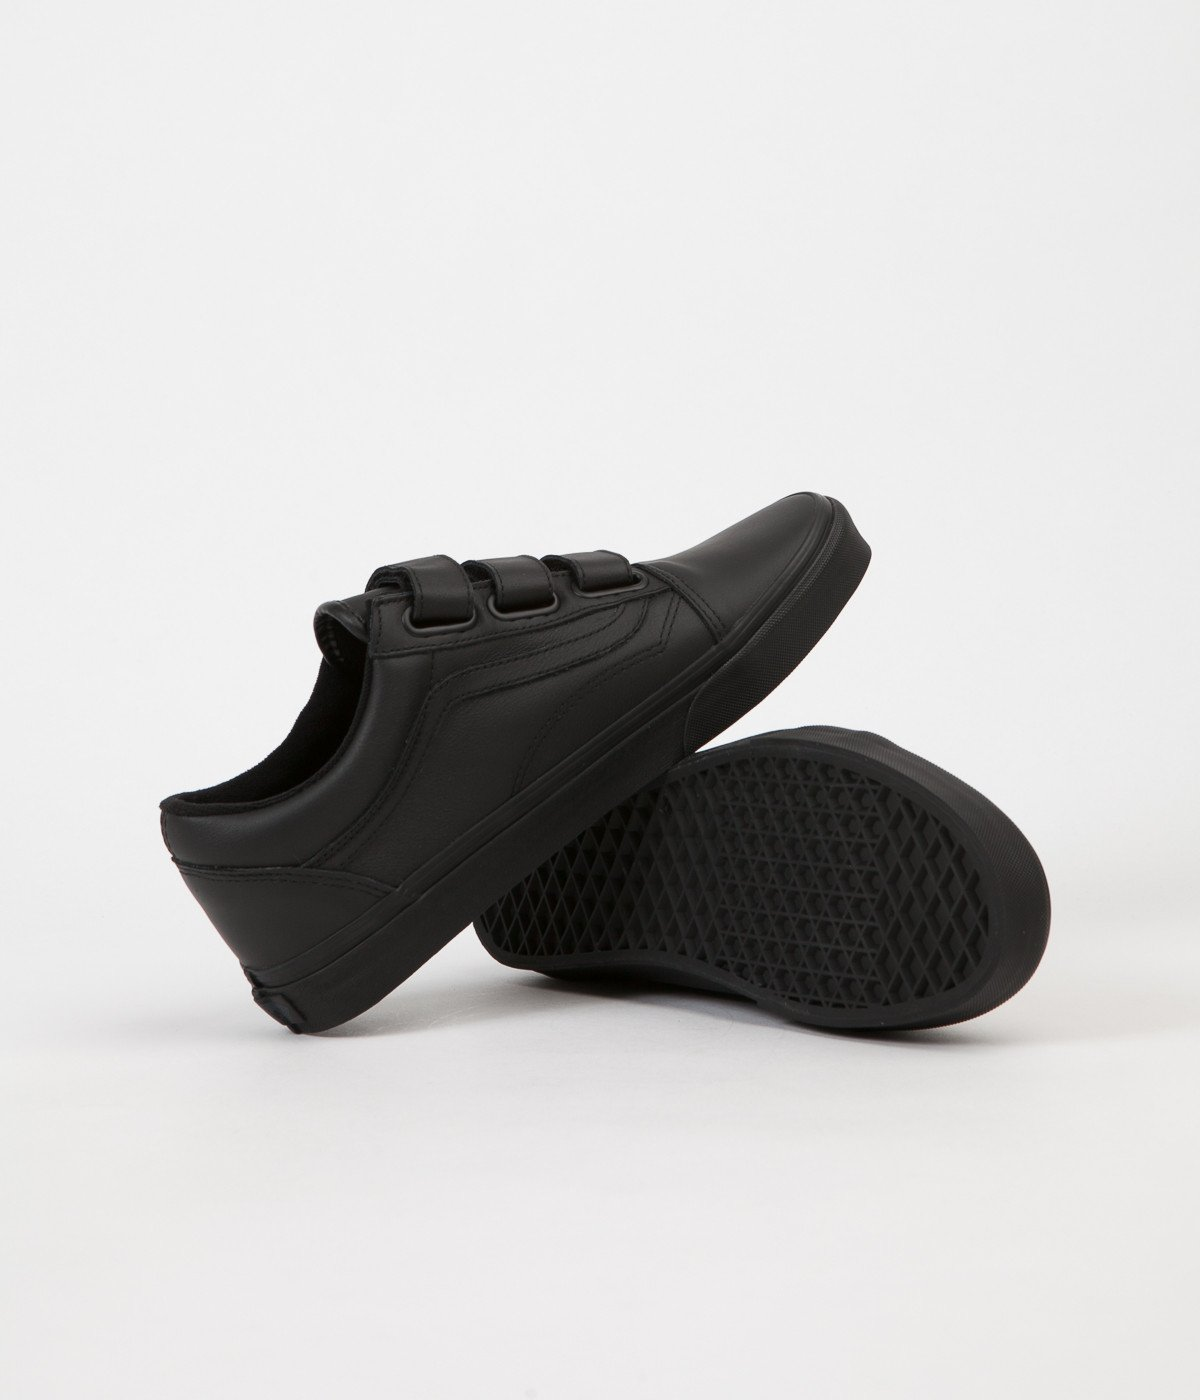 Vans - Vans Old Skool V Mono Leather Black Ankle-High Skateboarding Shoe -  8.5M   7M - Walmart.com 931a97f1e4b6